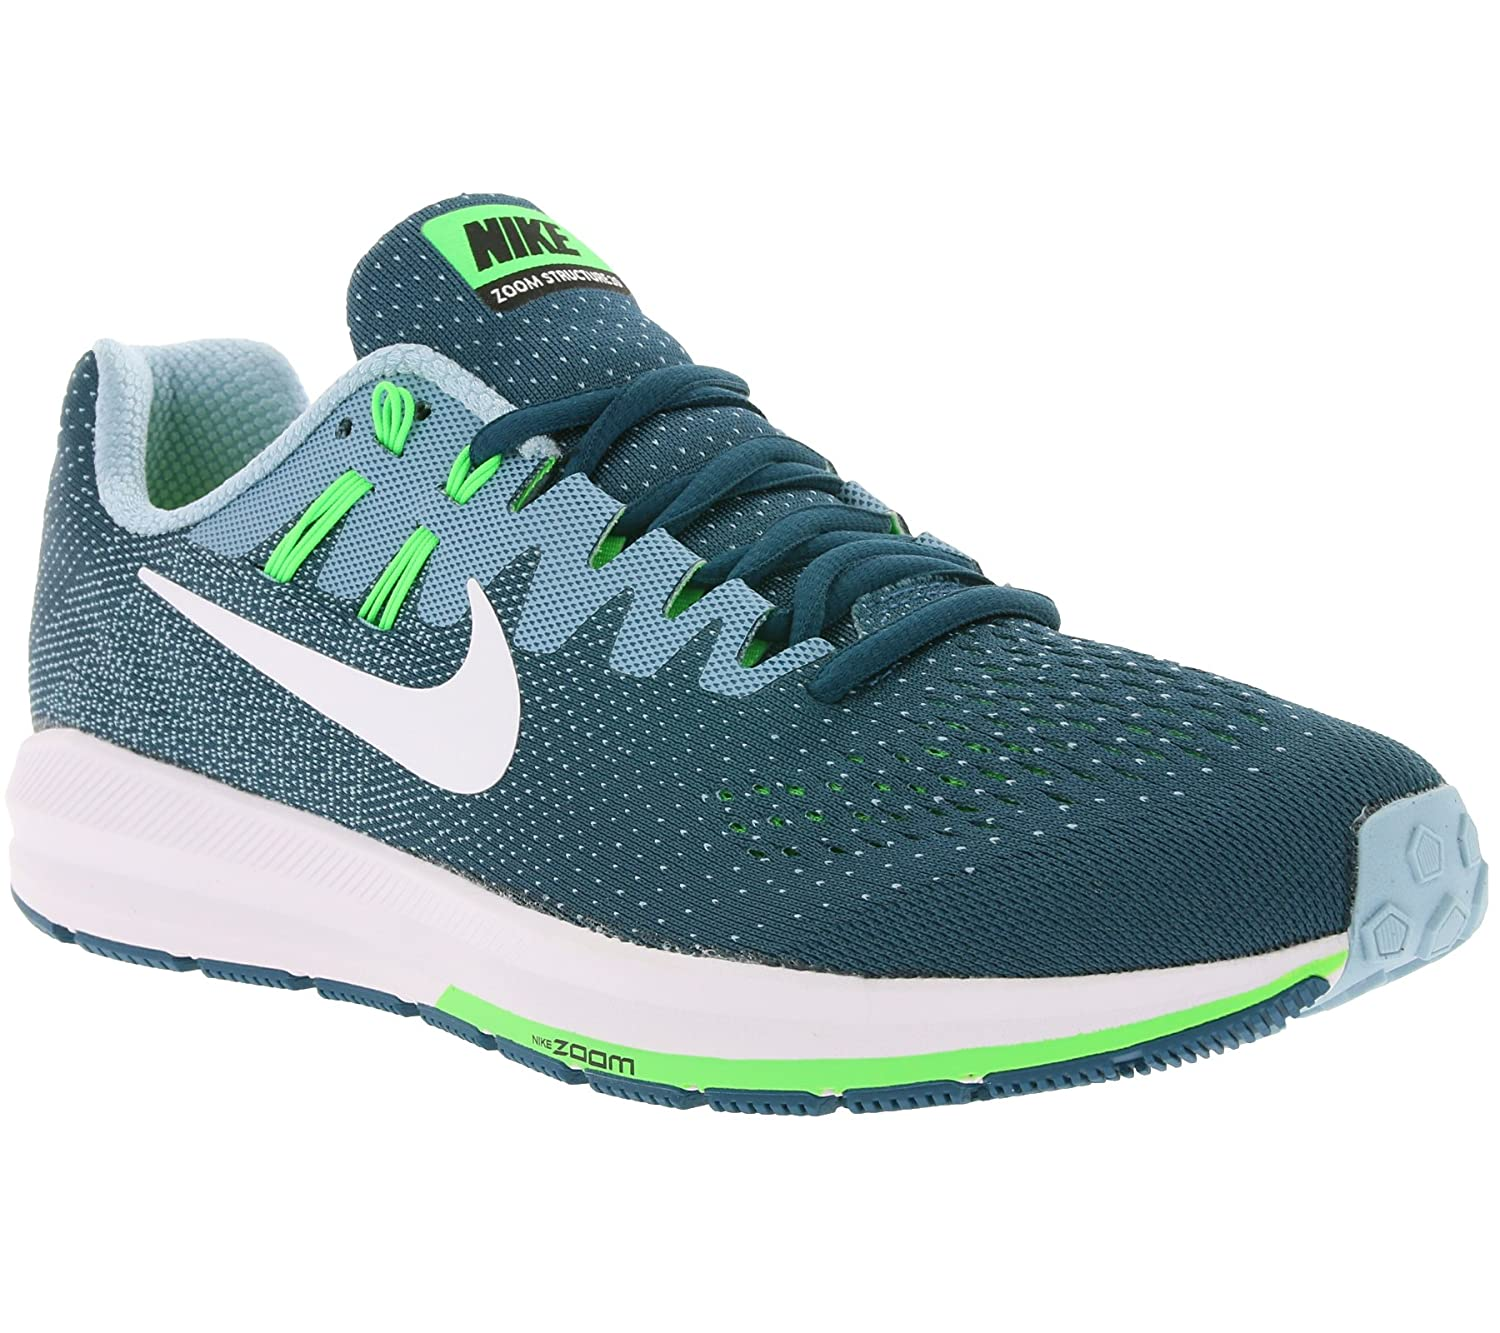 849576-402 Mens Nike Air Zoom Structure 20 Running Shoe  11